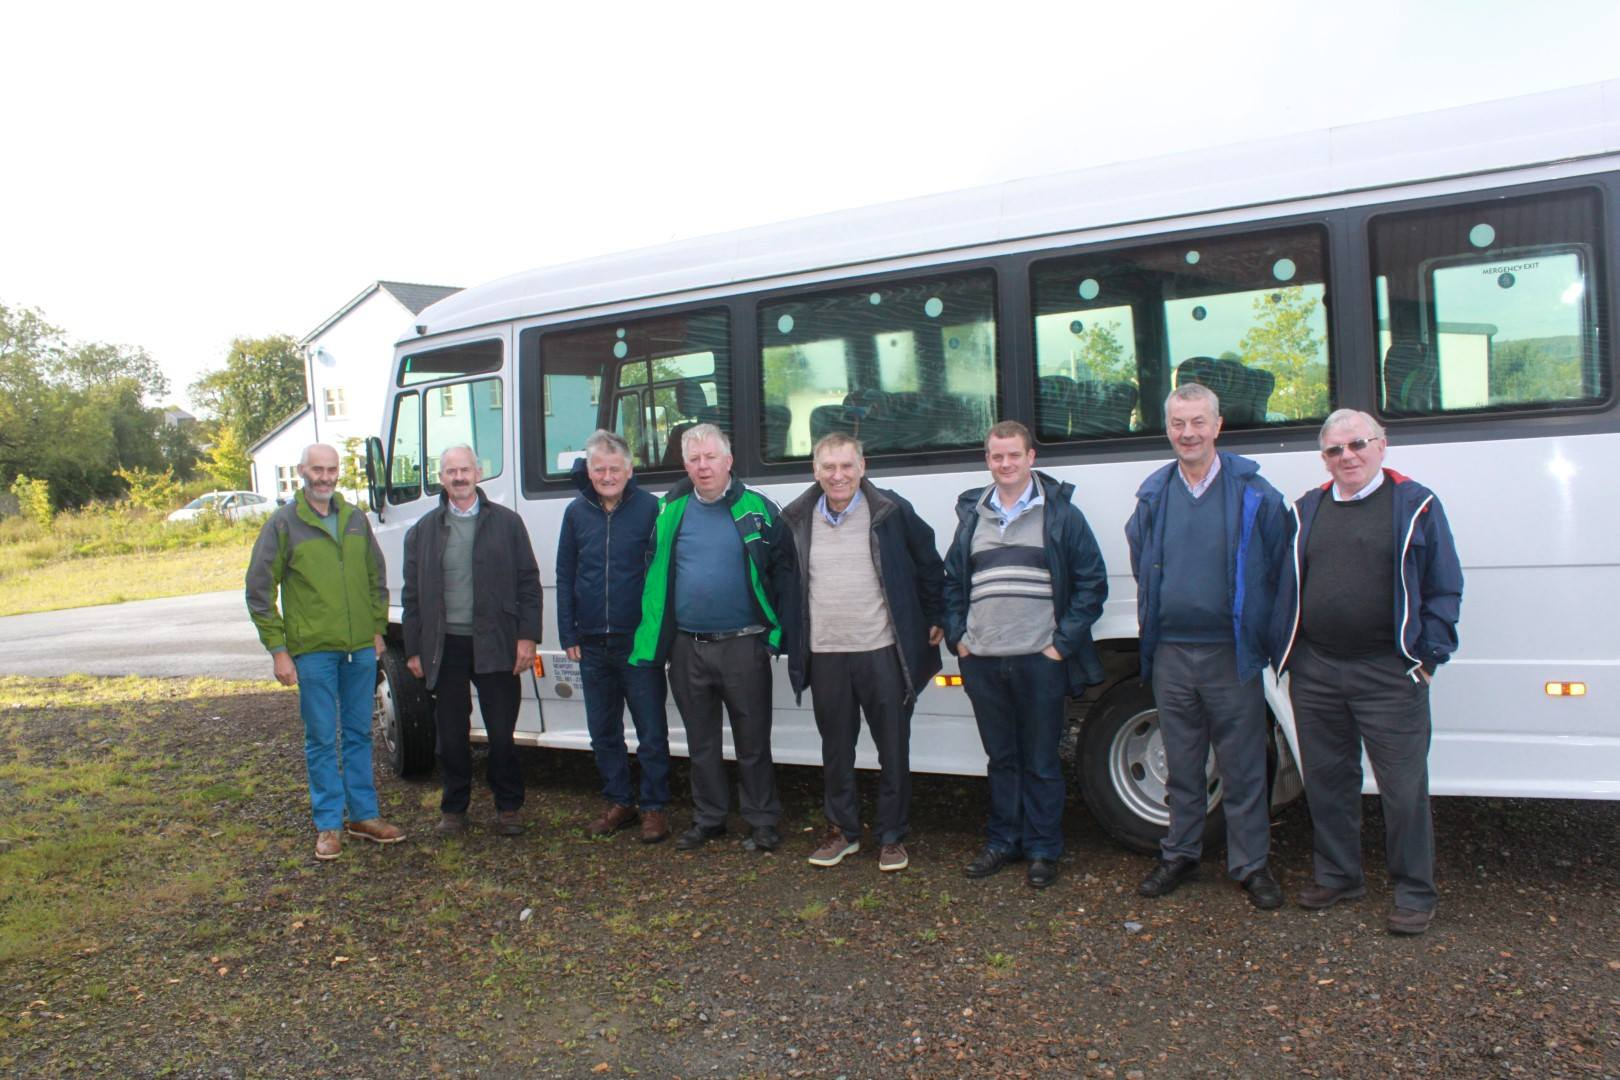 Mulcair Men's Shed visit to Cloughjordan